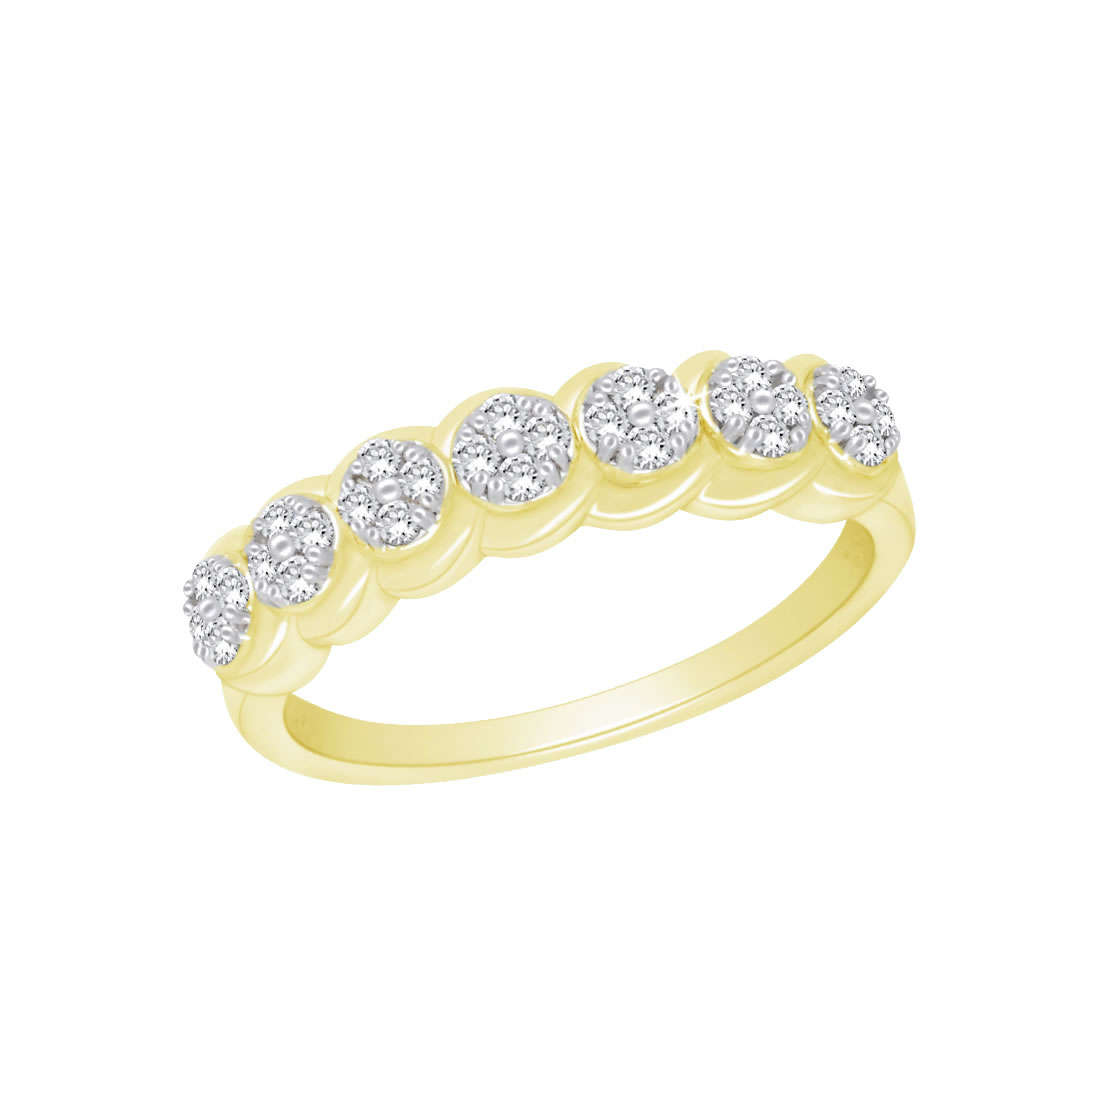 14k White or Yellow Gold Ring with Diamonds